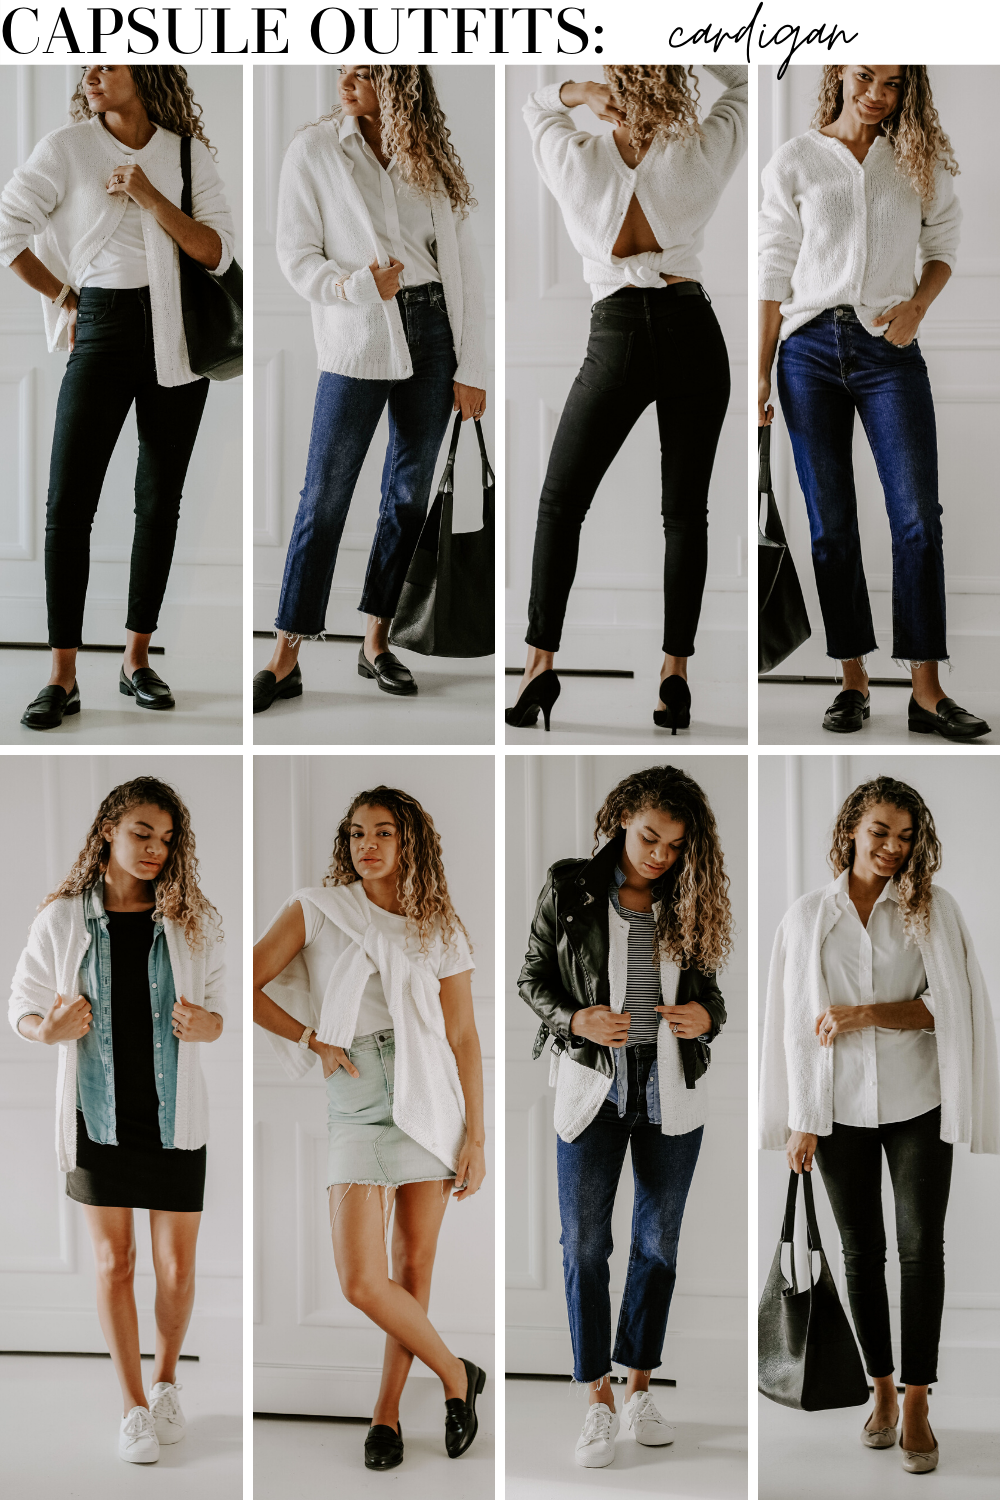 capsule outfits cardigan